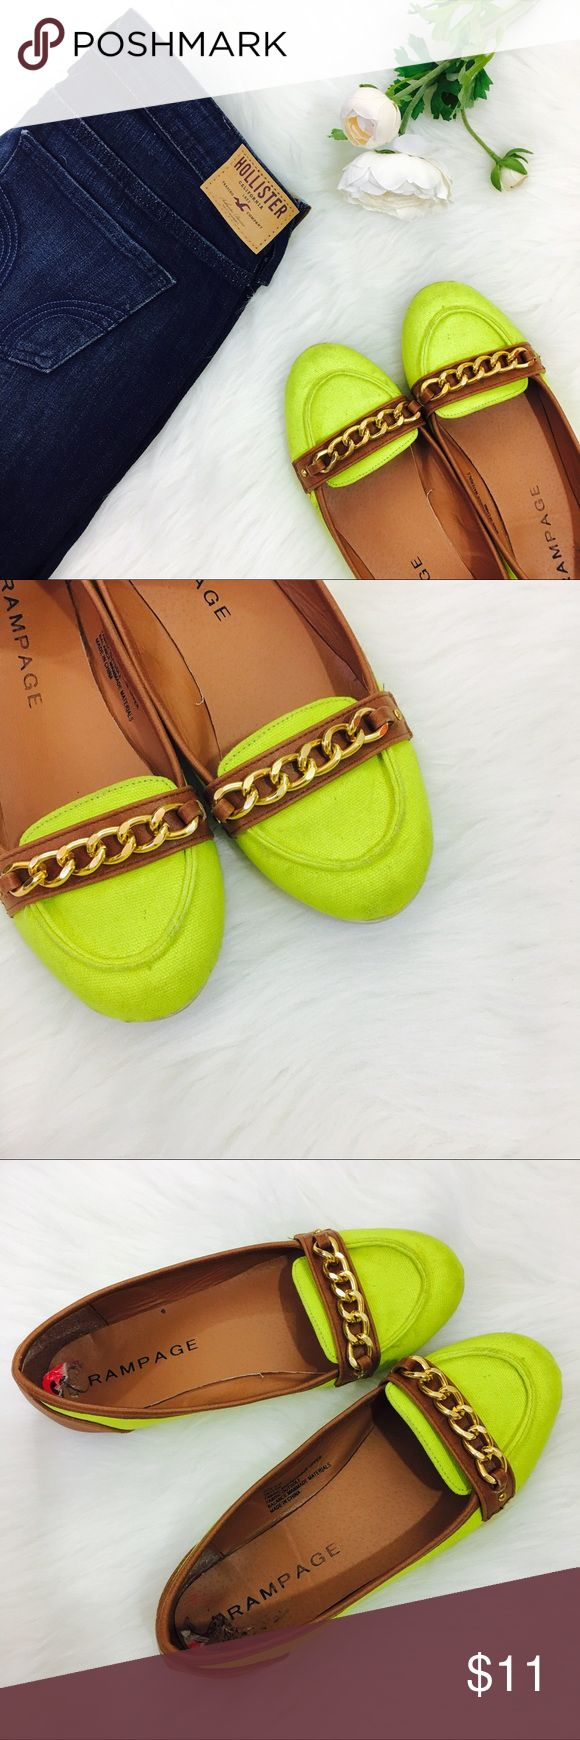 🆕 Rampage Neon Flats The perfect flats to punch up any springtime outfit! Good condition, no major flaws just a little dirty. Rampage Shoes Flats & Loafers